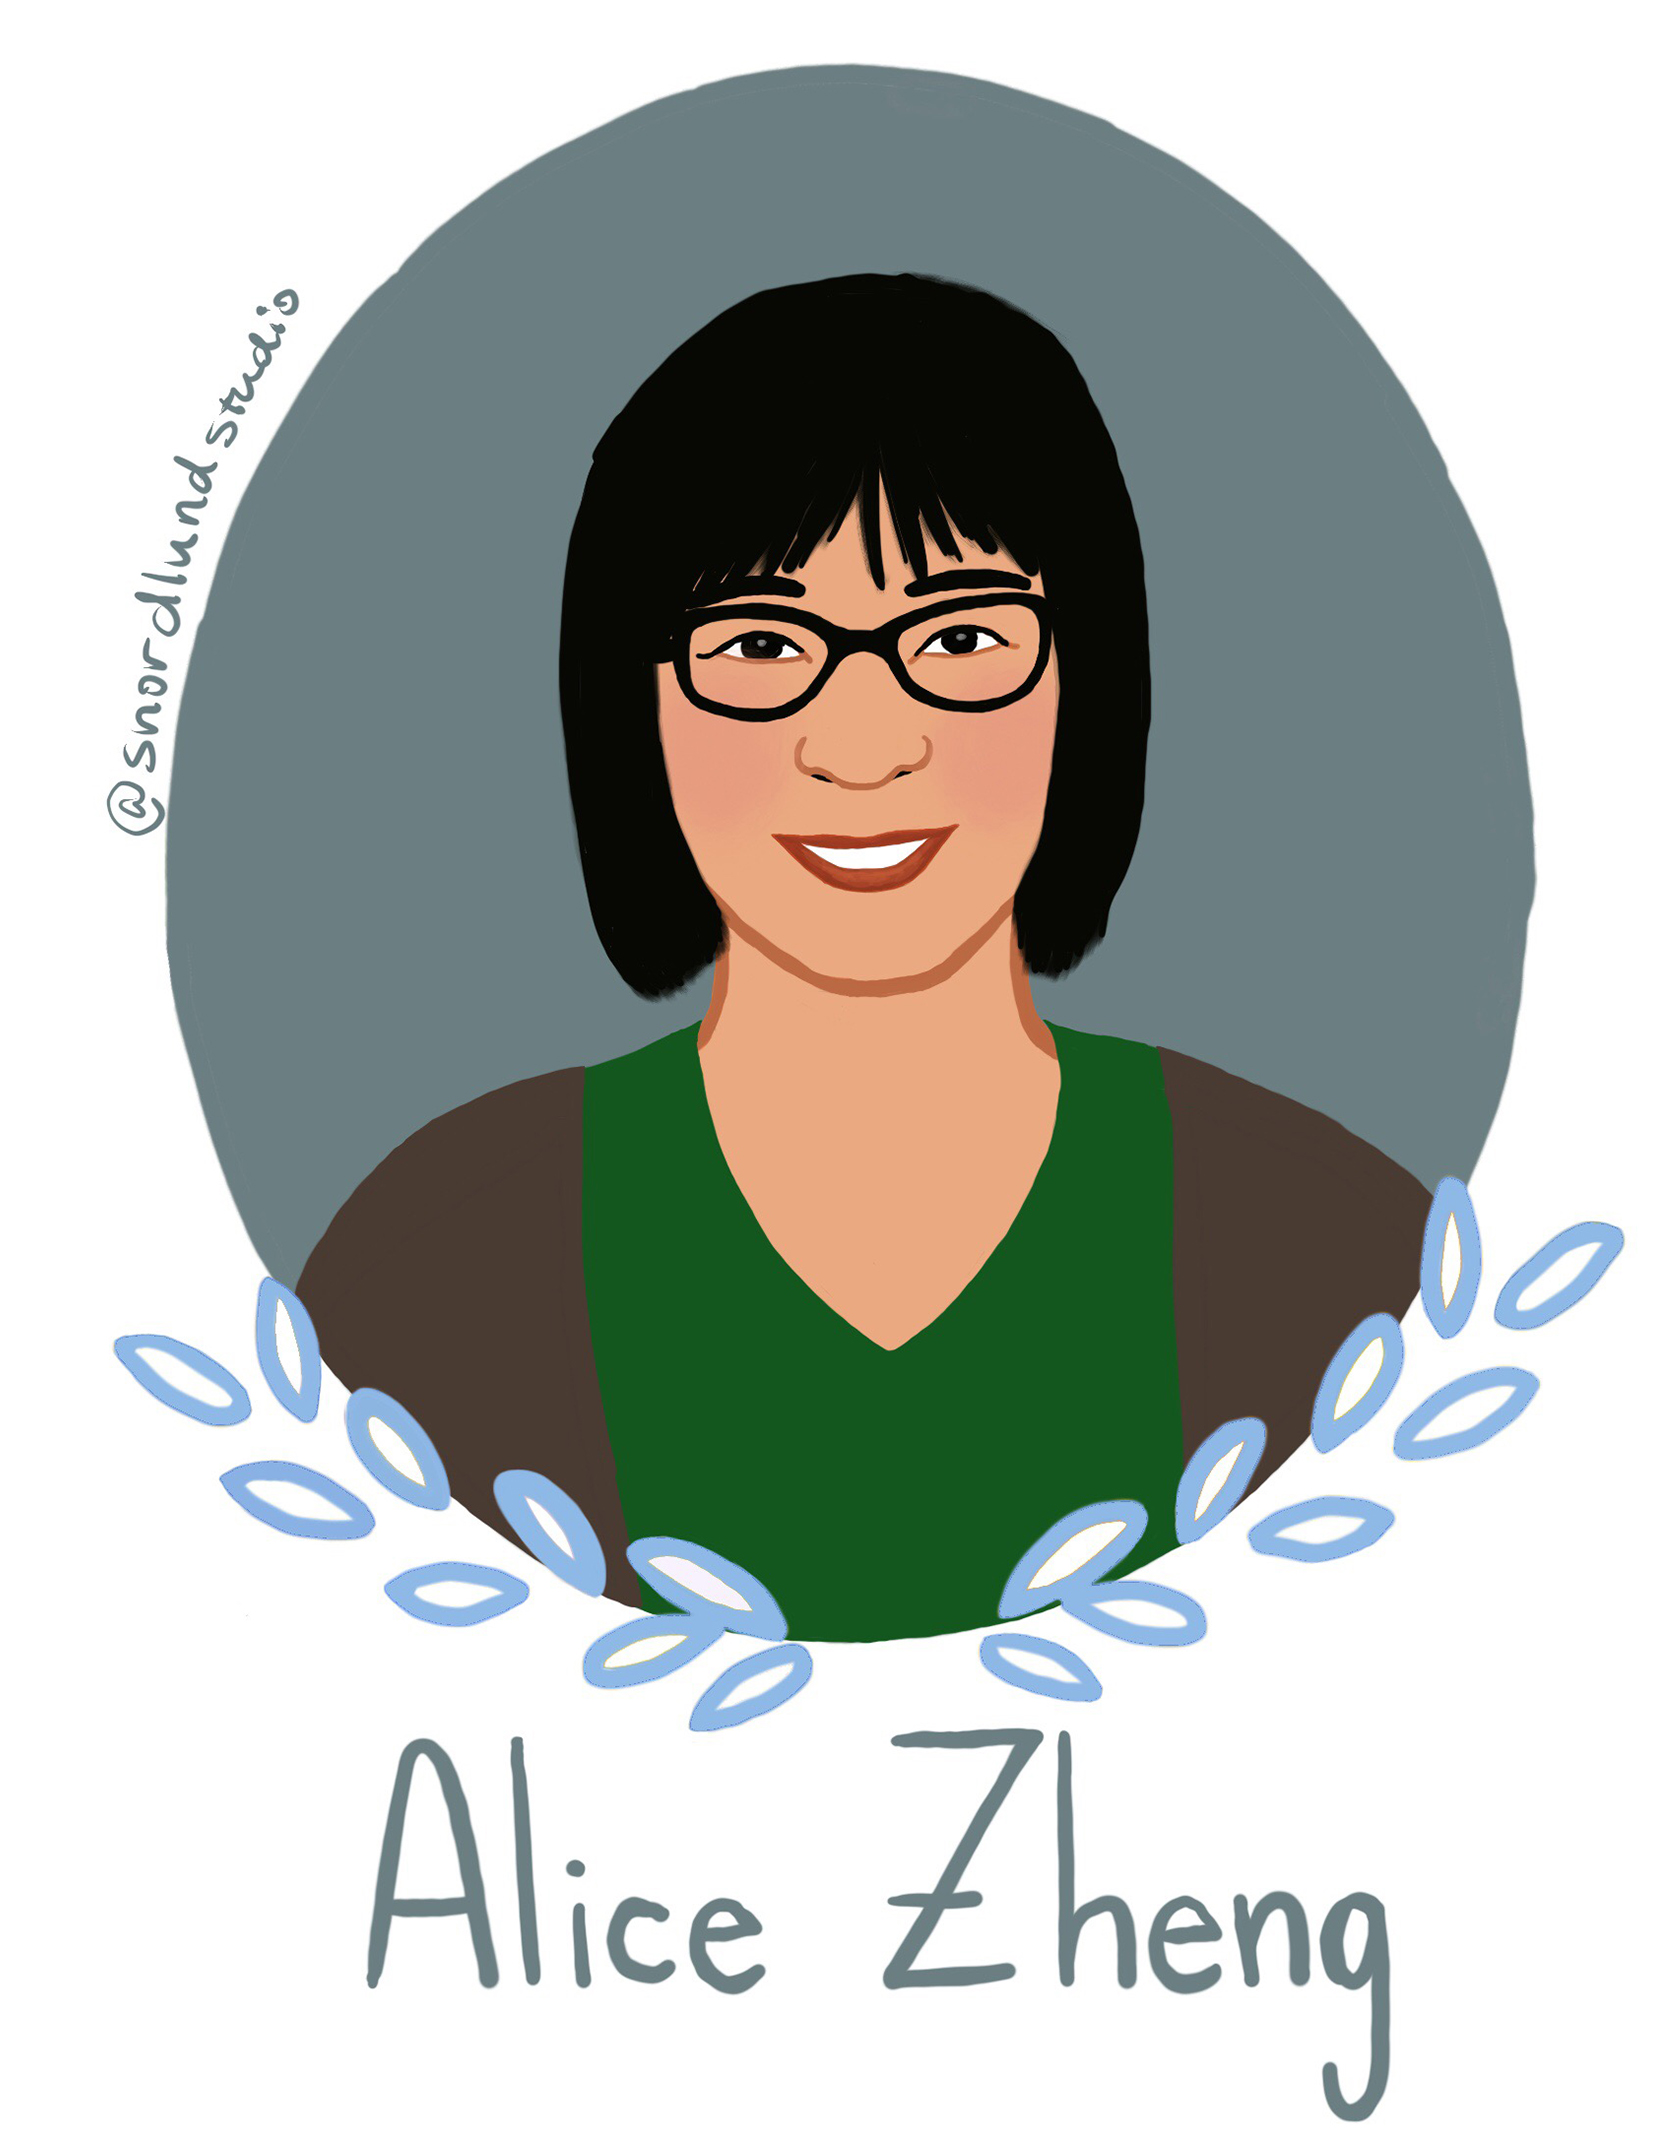 12. Alice Zheng - Alice Zheng is a machine learning researcher and technical leader. She has a PhD in electrical engineering and computer science, and a BA in computer science for mathematics. Zheng is currently the Senior Manager in Amazon's Ad Platform, and she's also writing an engineering book in her spare time.